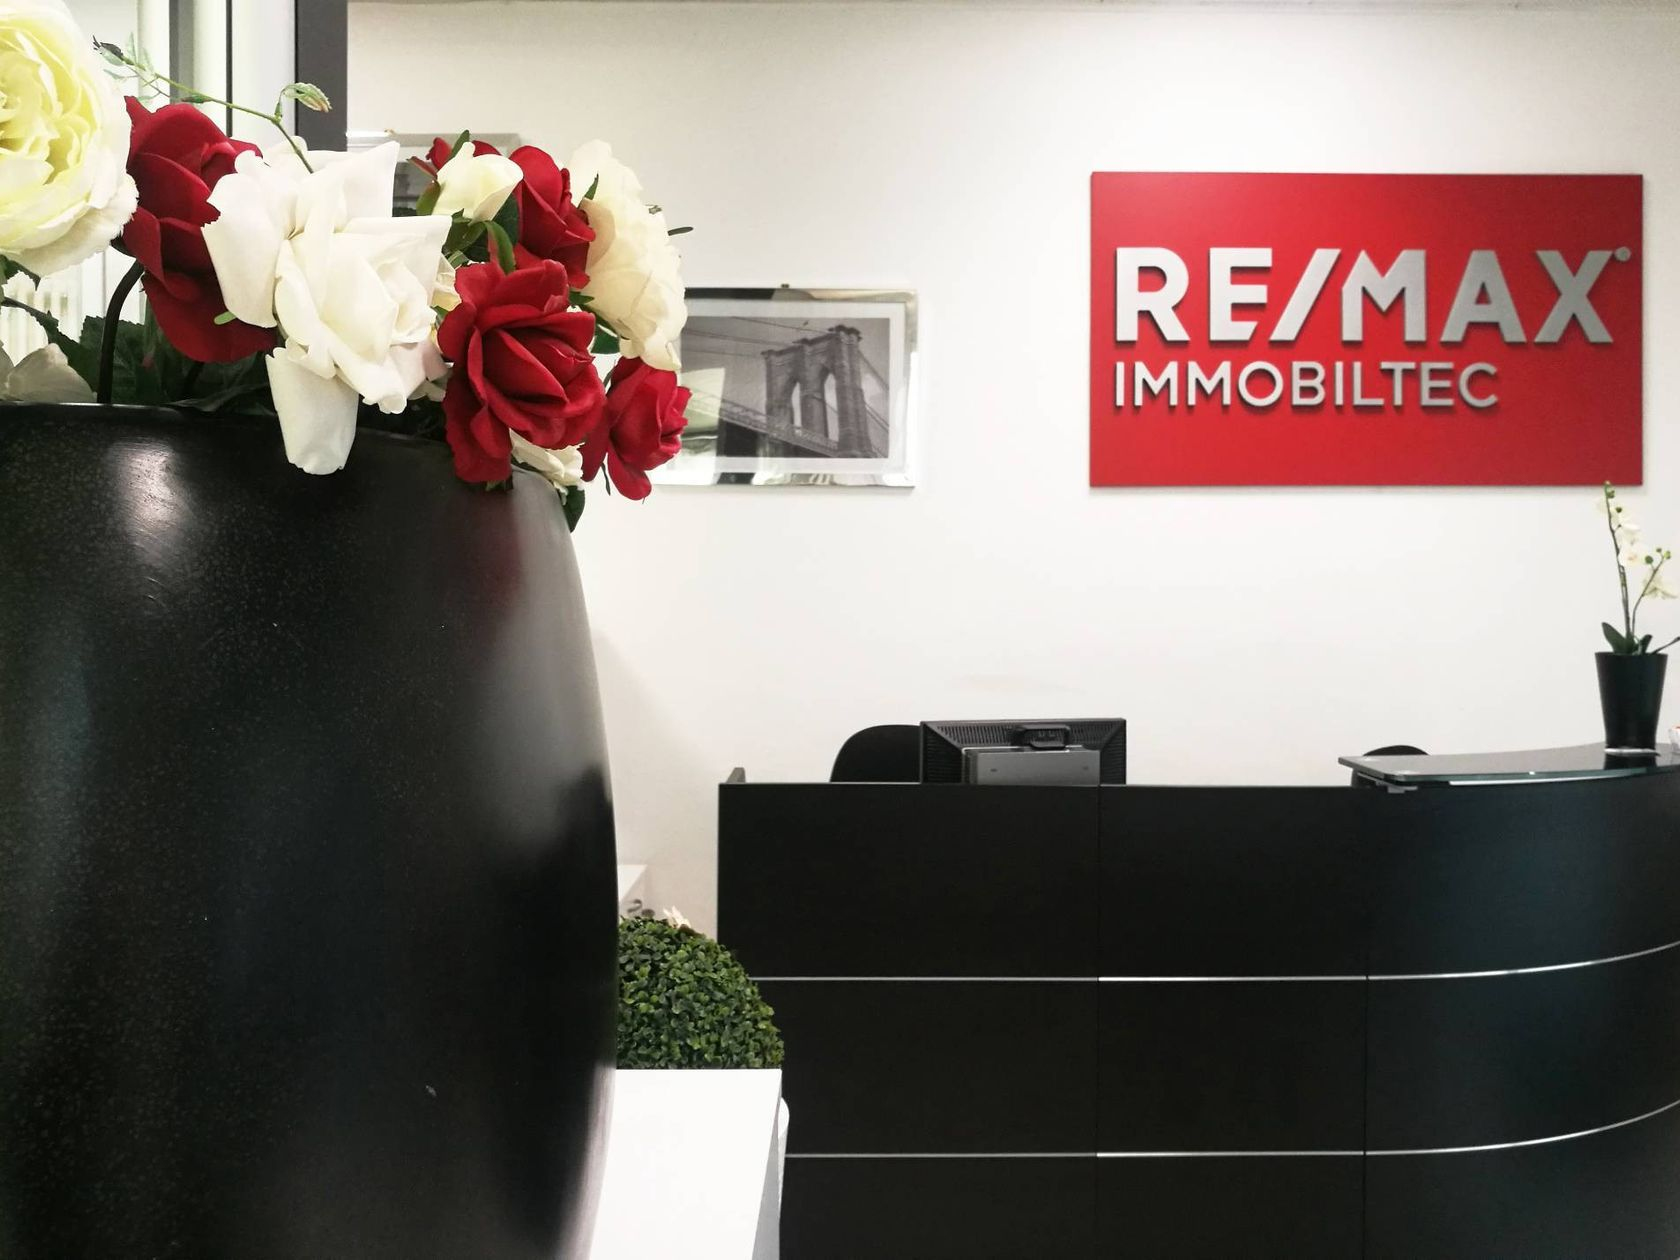 RE/MAX Immobiltec Saronno